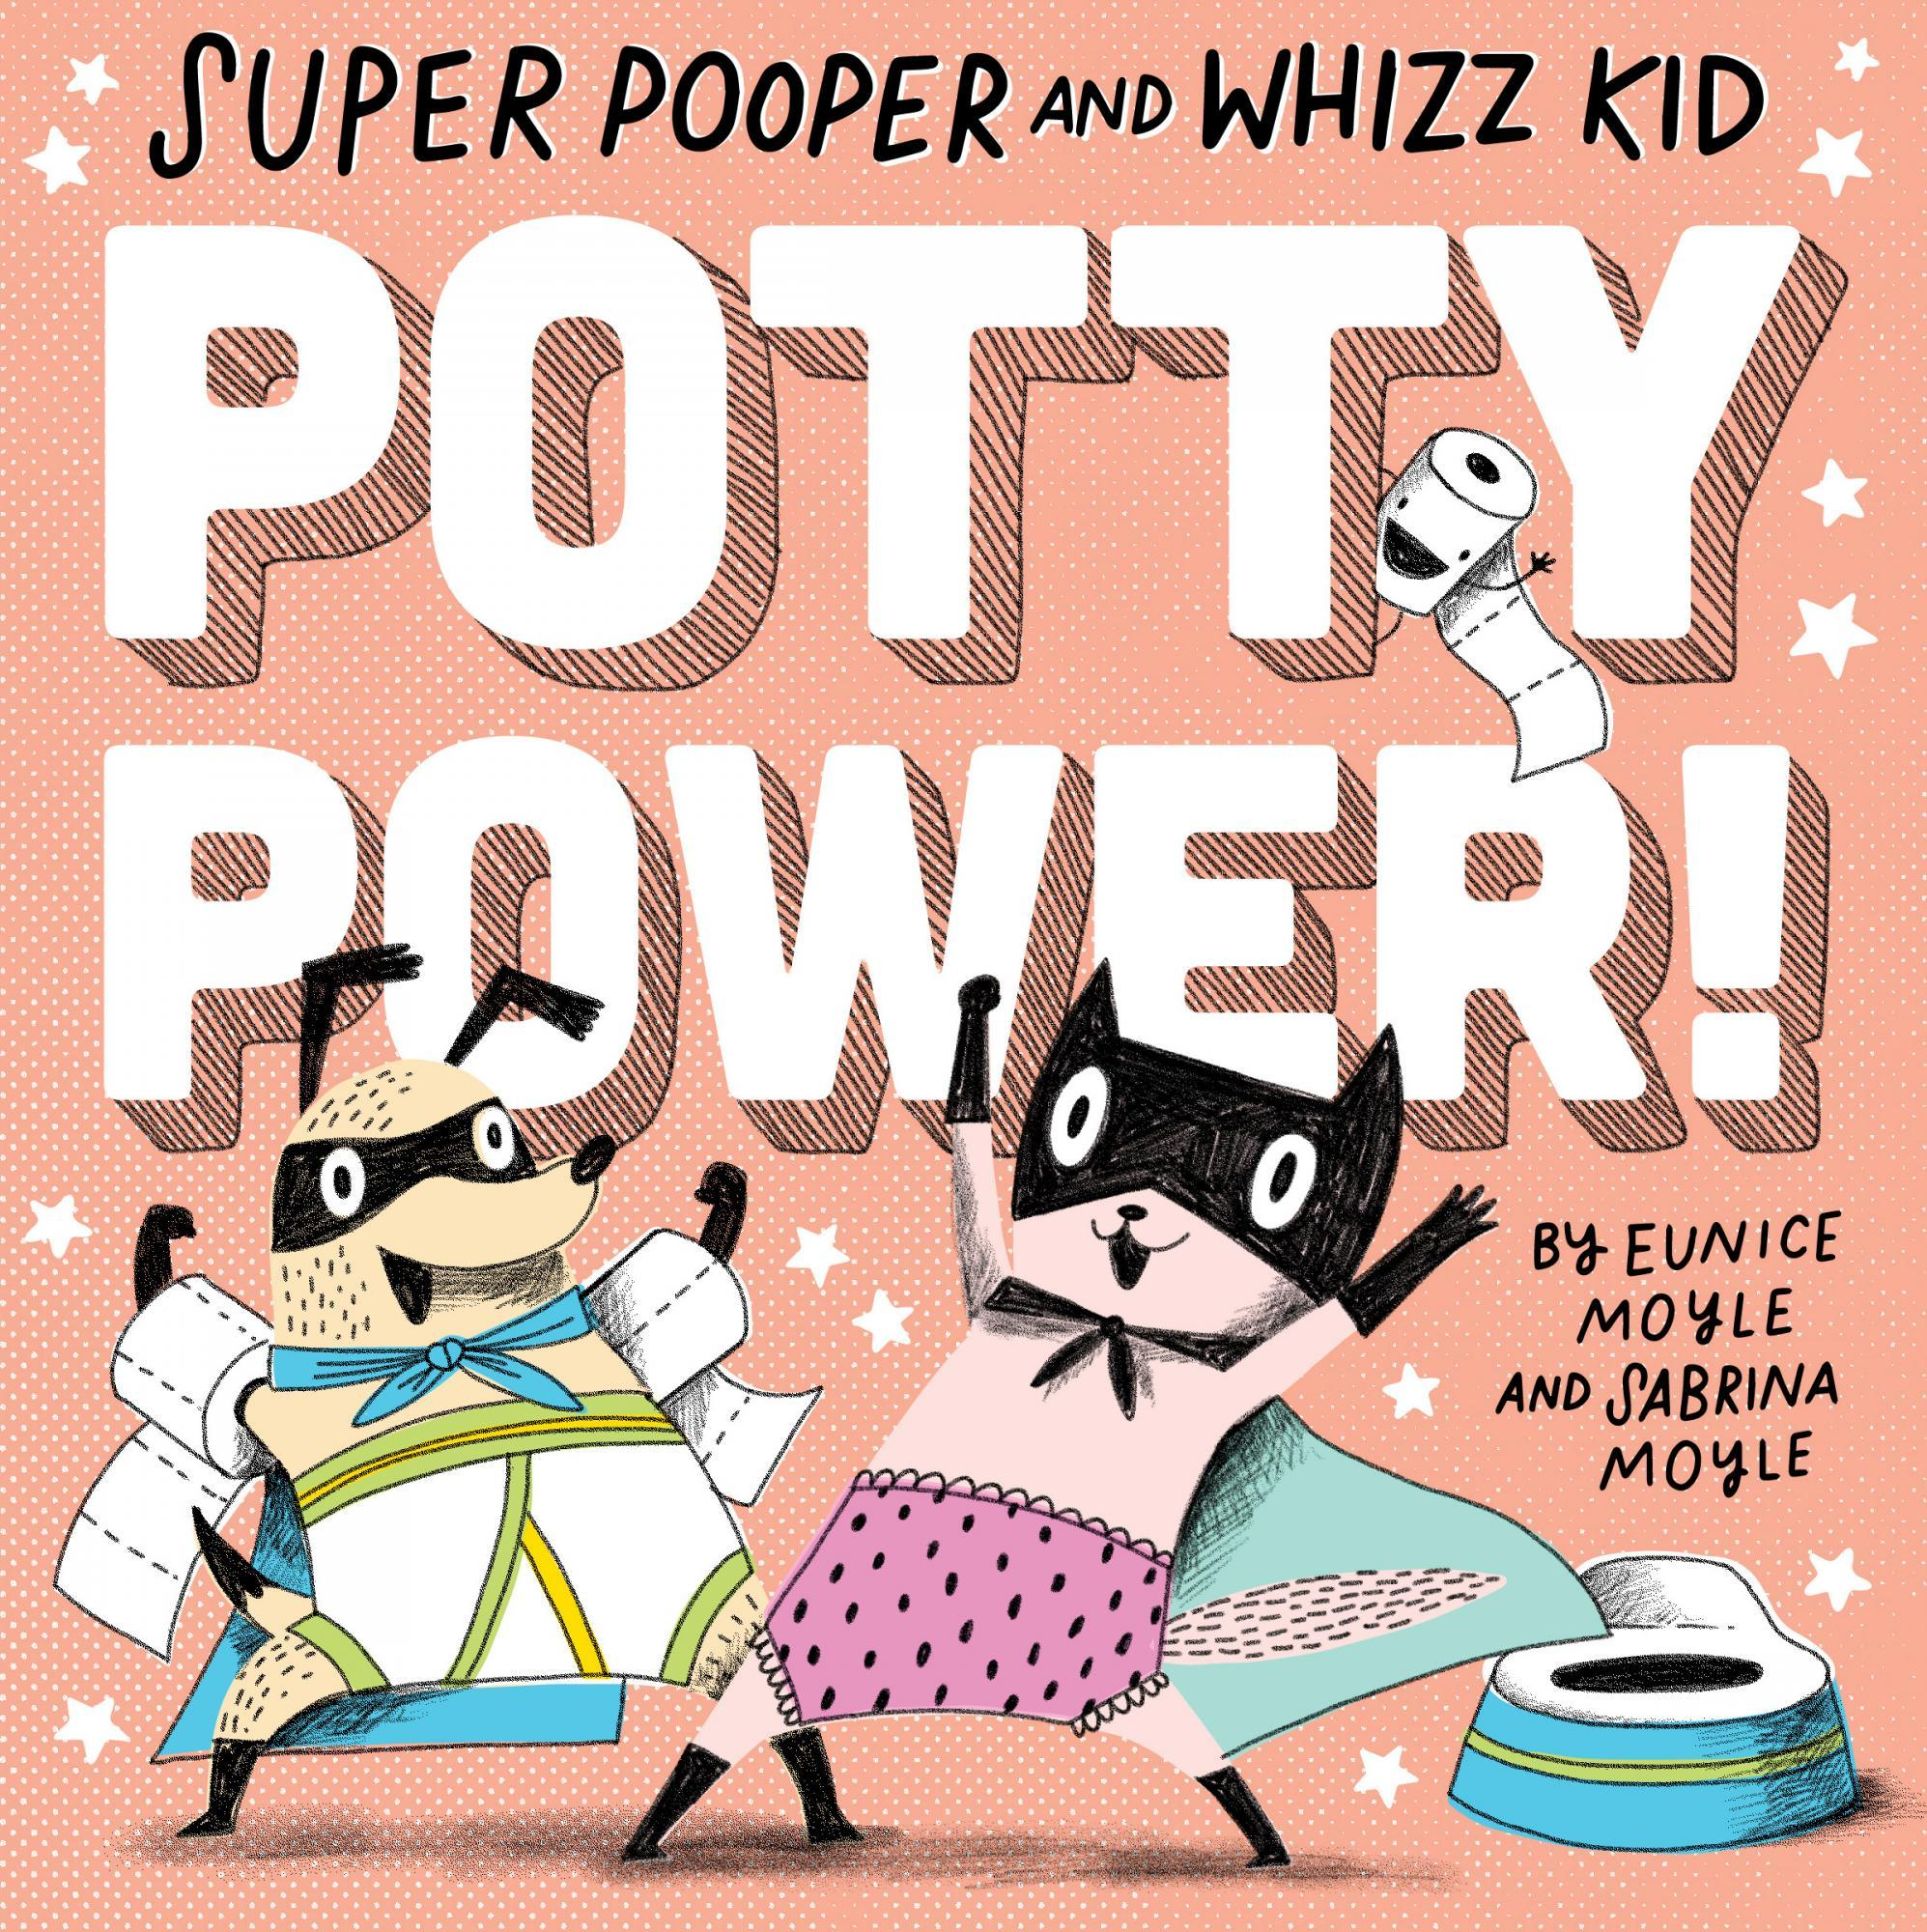 Super Pooper and Whizz Kid: Potty Power